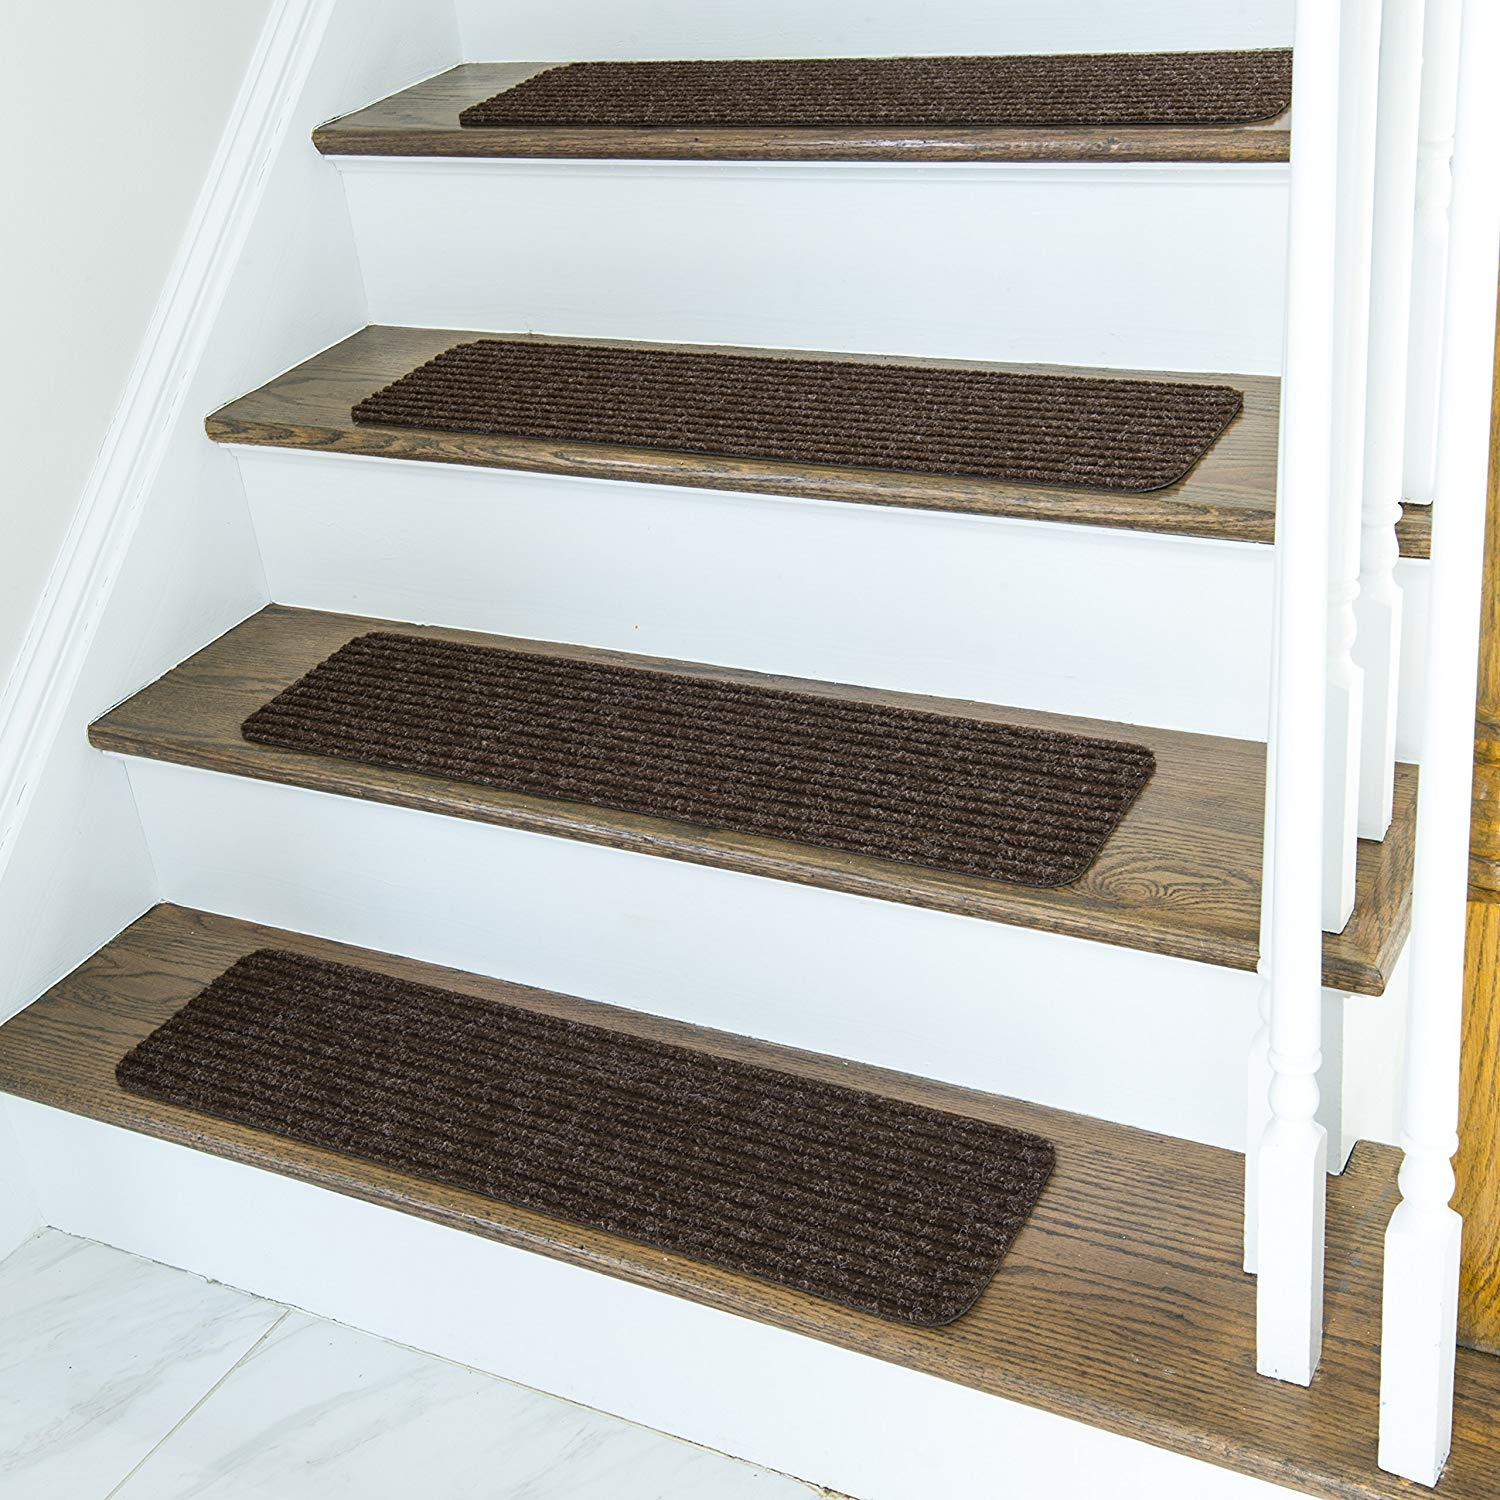 Top 10 Carpets For Stairs In 2020 Highly Recommend In 2020 | Ottomanson Softy Stair Treads | Carpet Stair | Softy Carved | Amazon | Softy Collection | Non Slip Stair